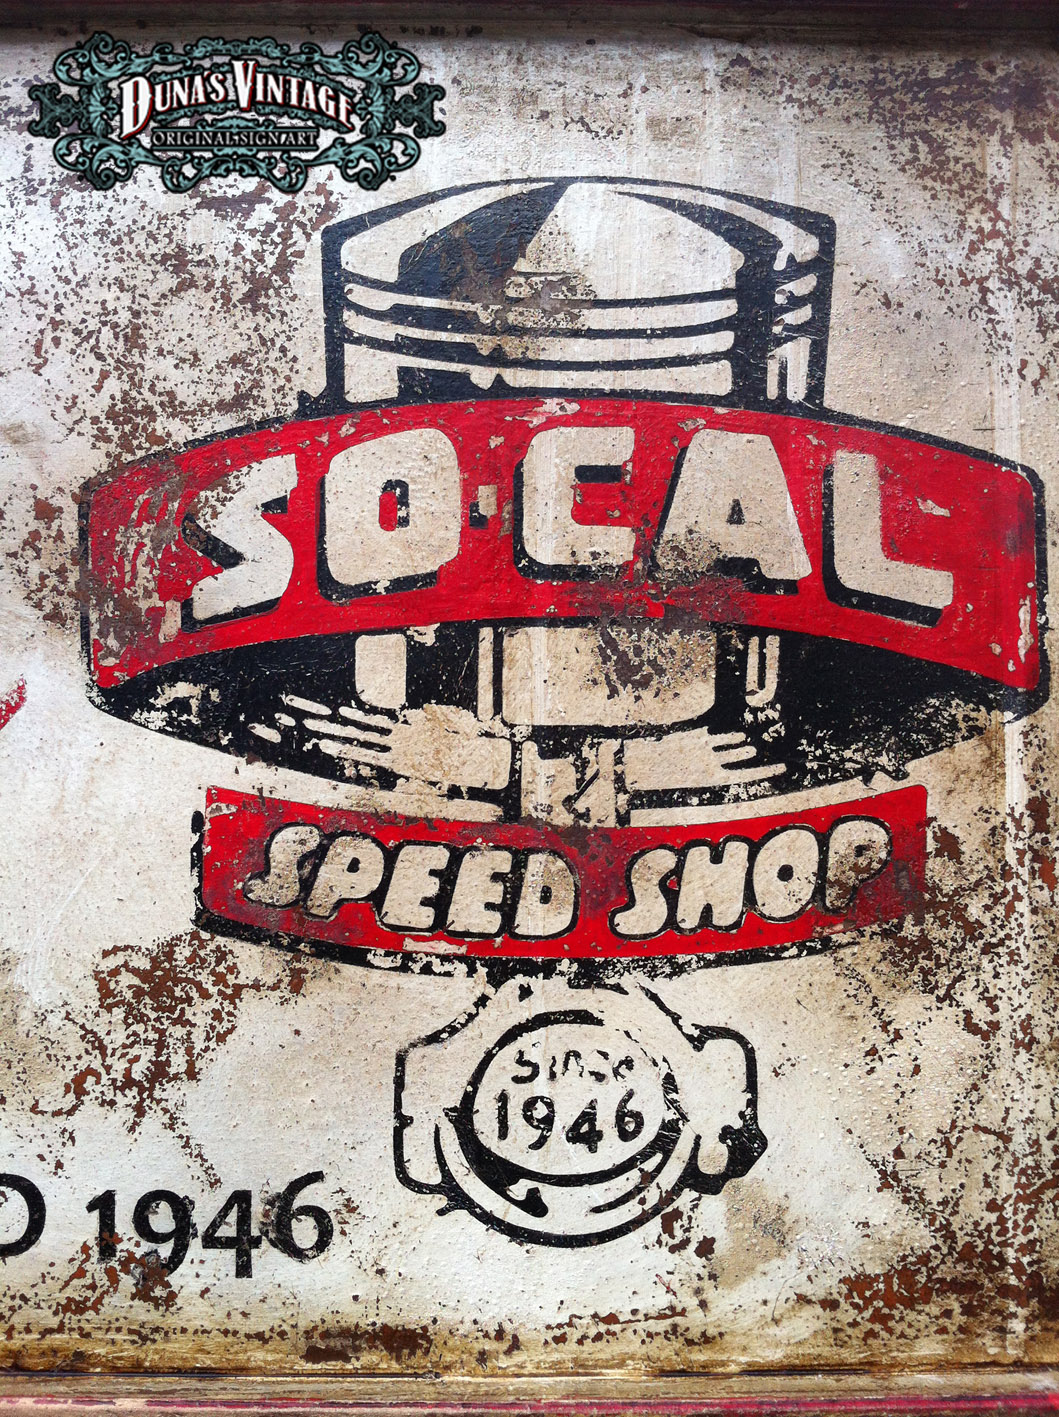 Duna s vintage speed shop so cal duna s vintage for sale 150 - Carteles retro ...